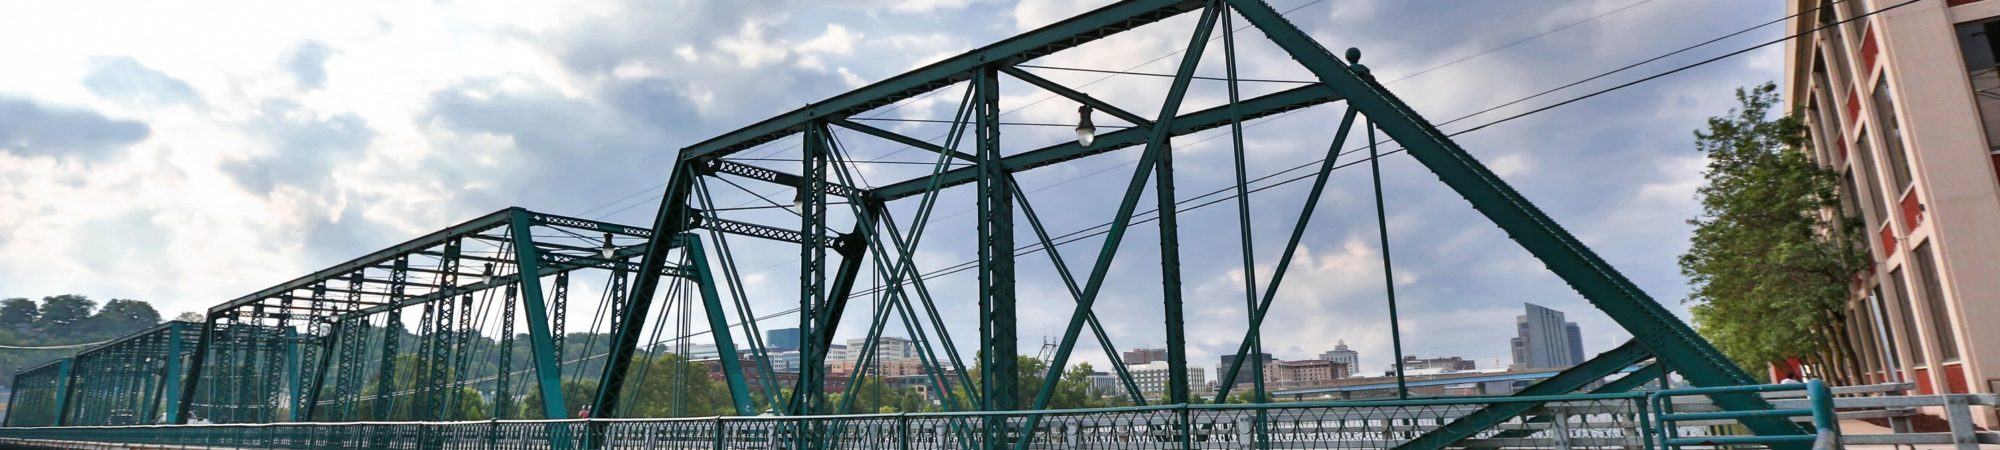 Banner-Bridge-Resized-9-20-16